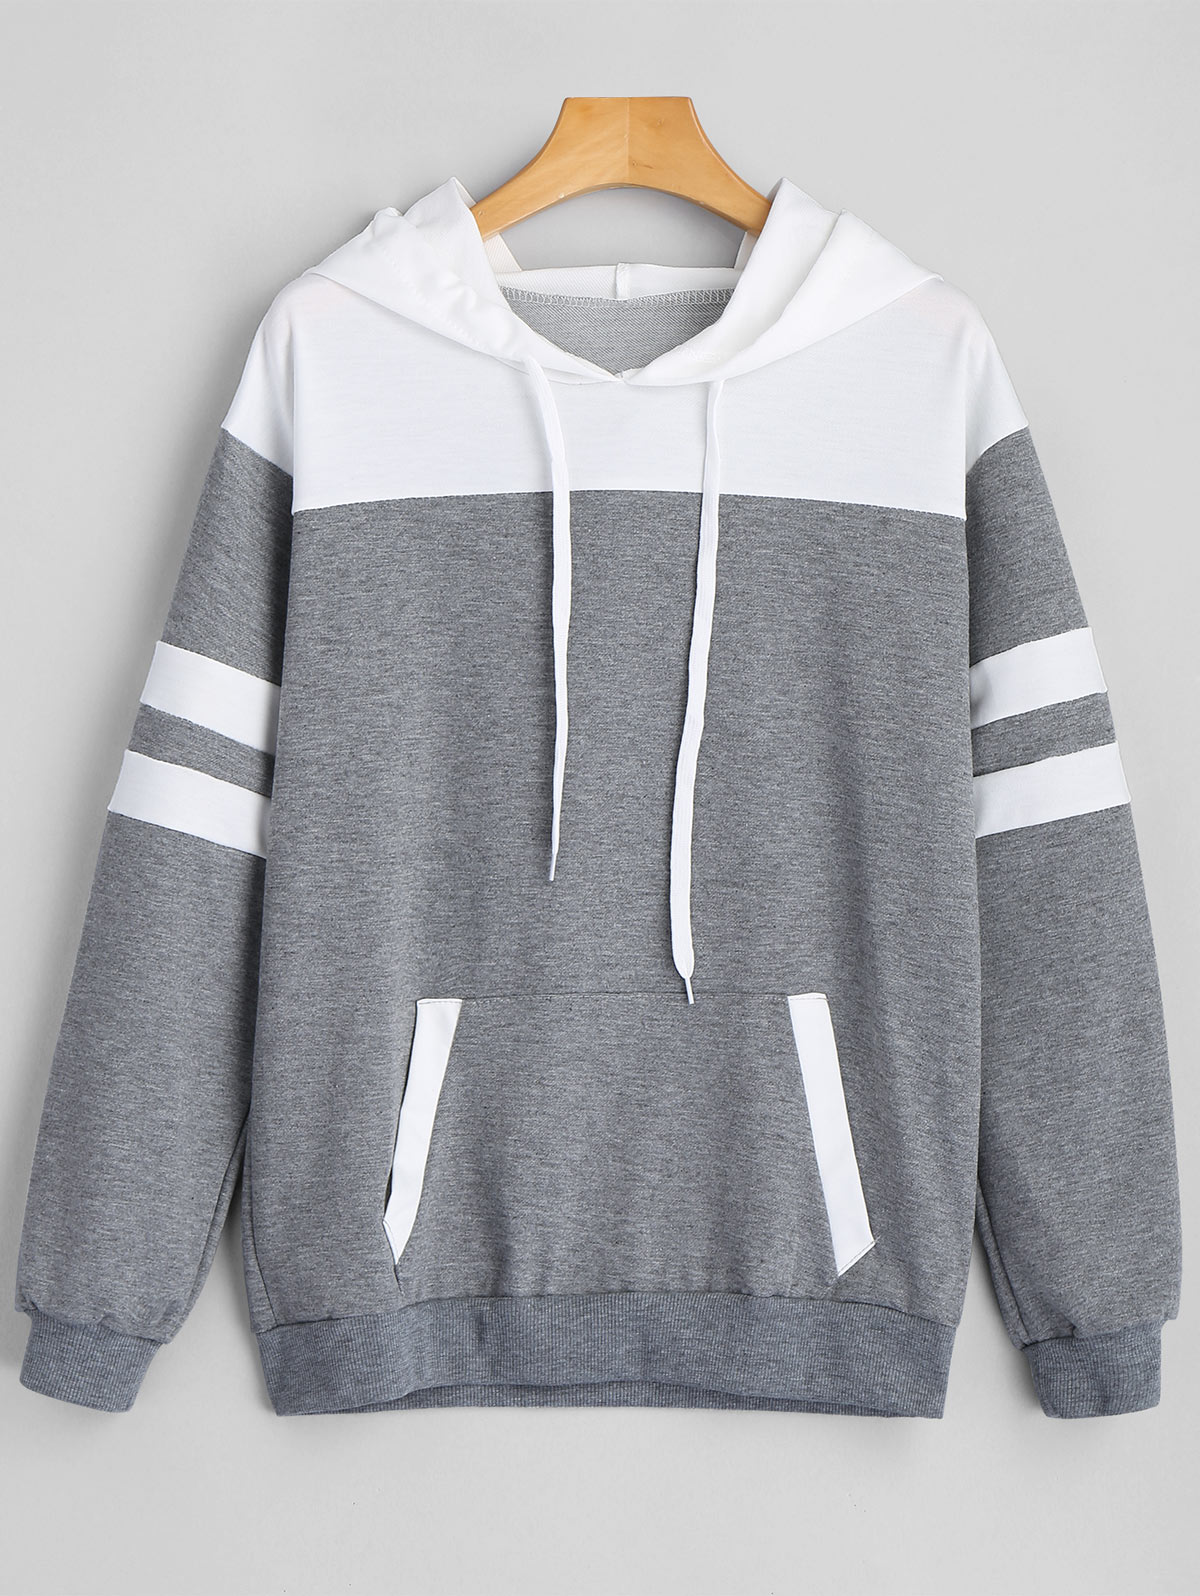 37f95bc5d24 Shirt Length  Regular Sleeve Length  Full Paern Style  Striped Weight   0.4200kg. Package Contents  1 x Hoodie Casual drawstring hoodie featuring  striped ...